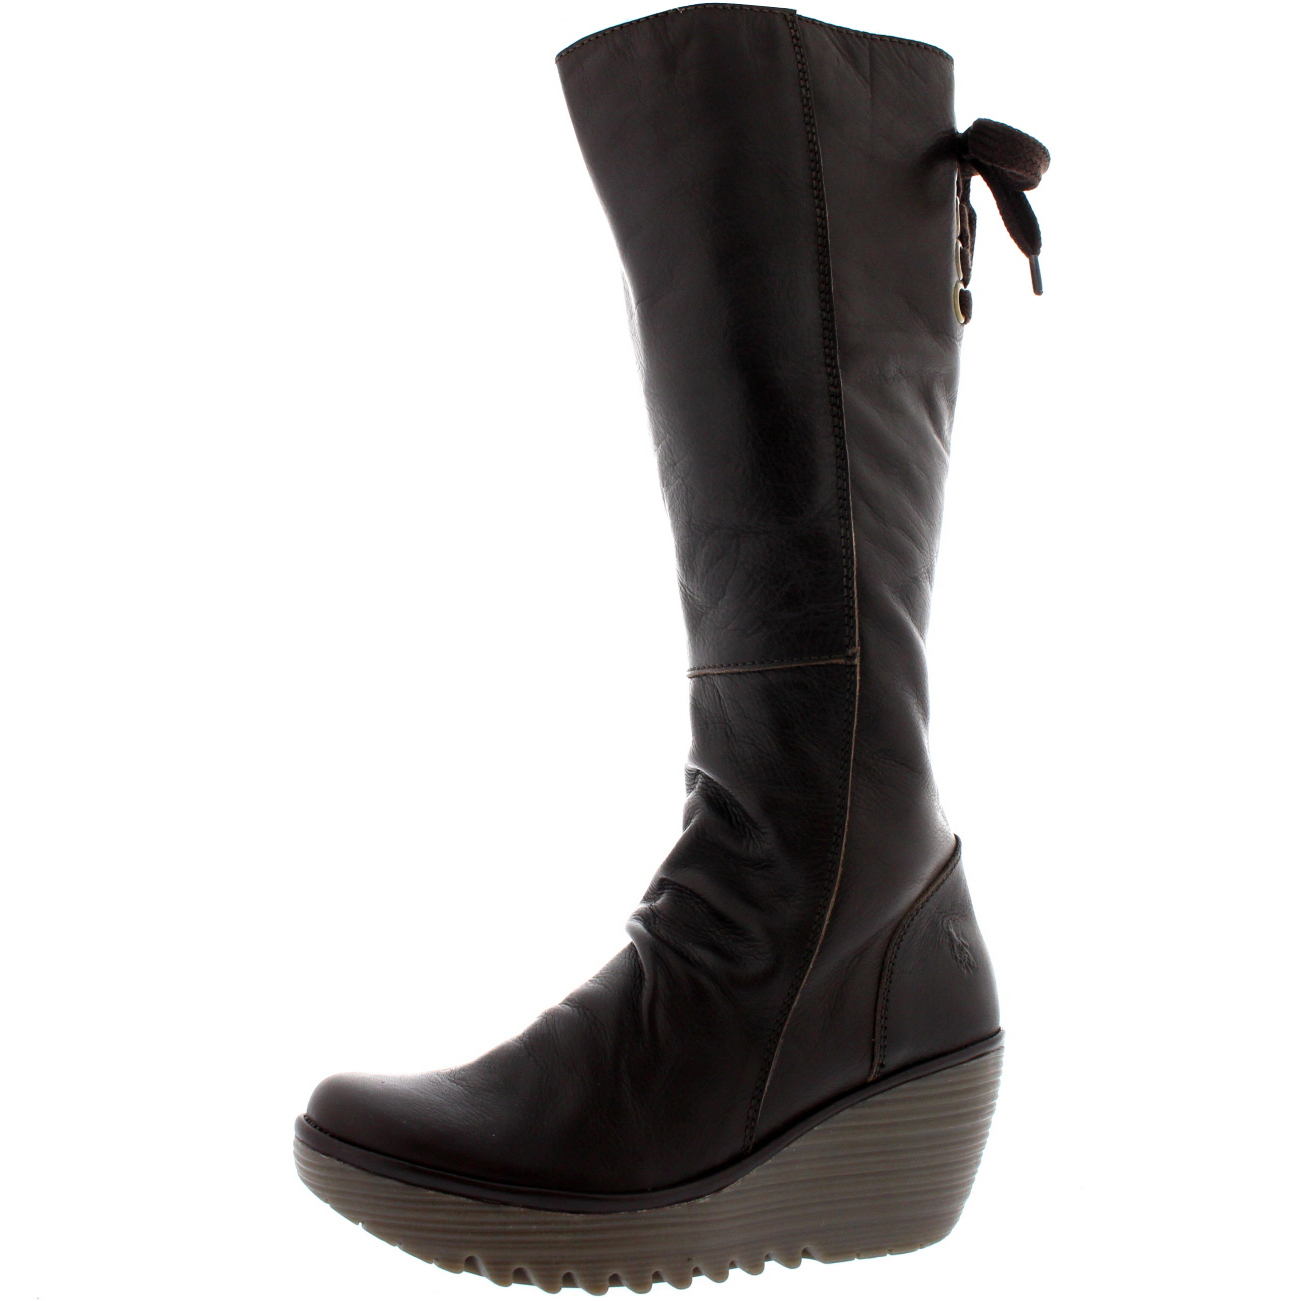 Leather womens snow boots